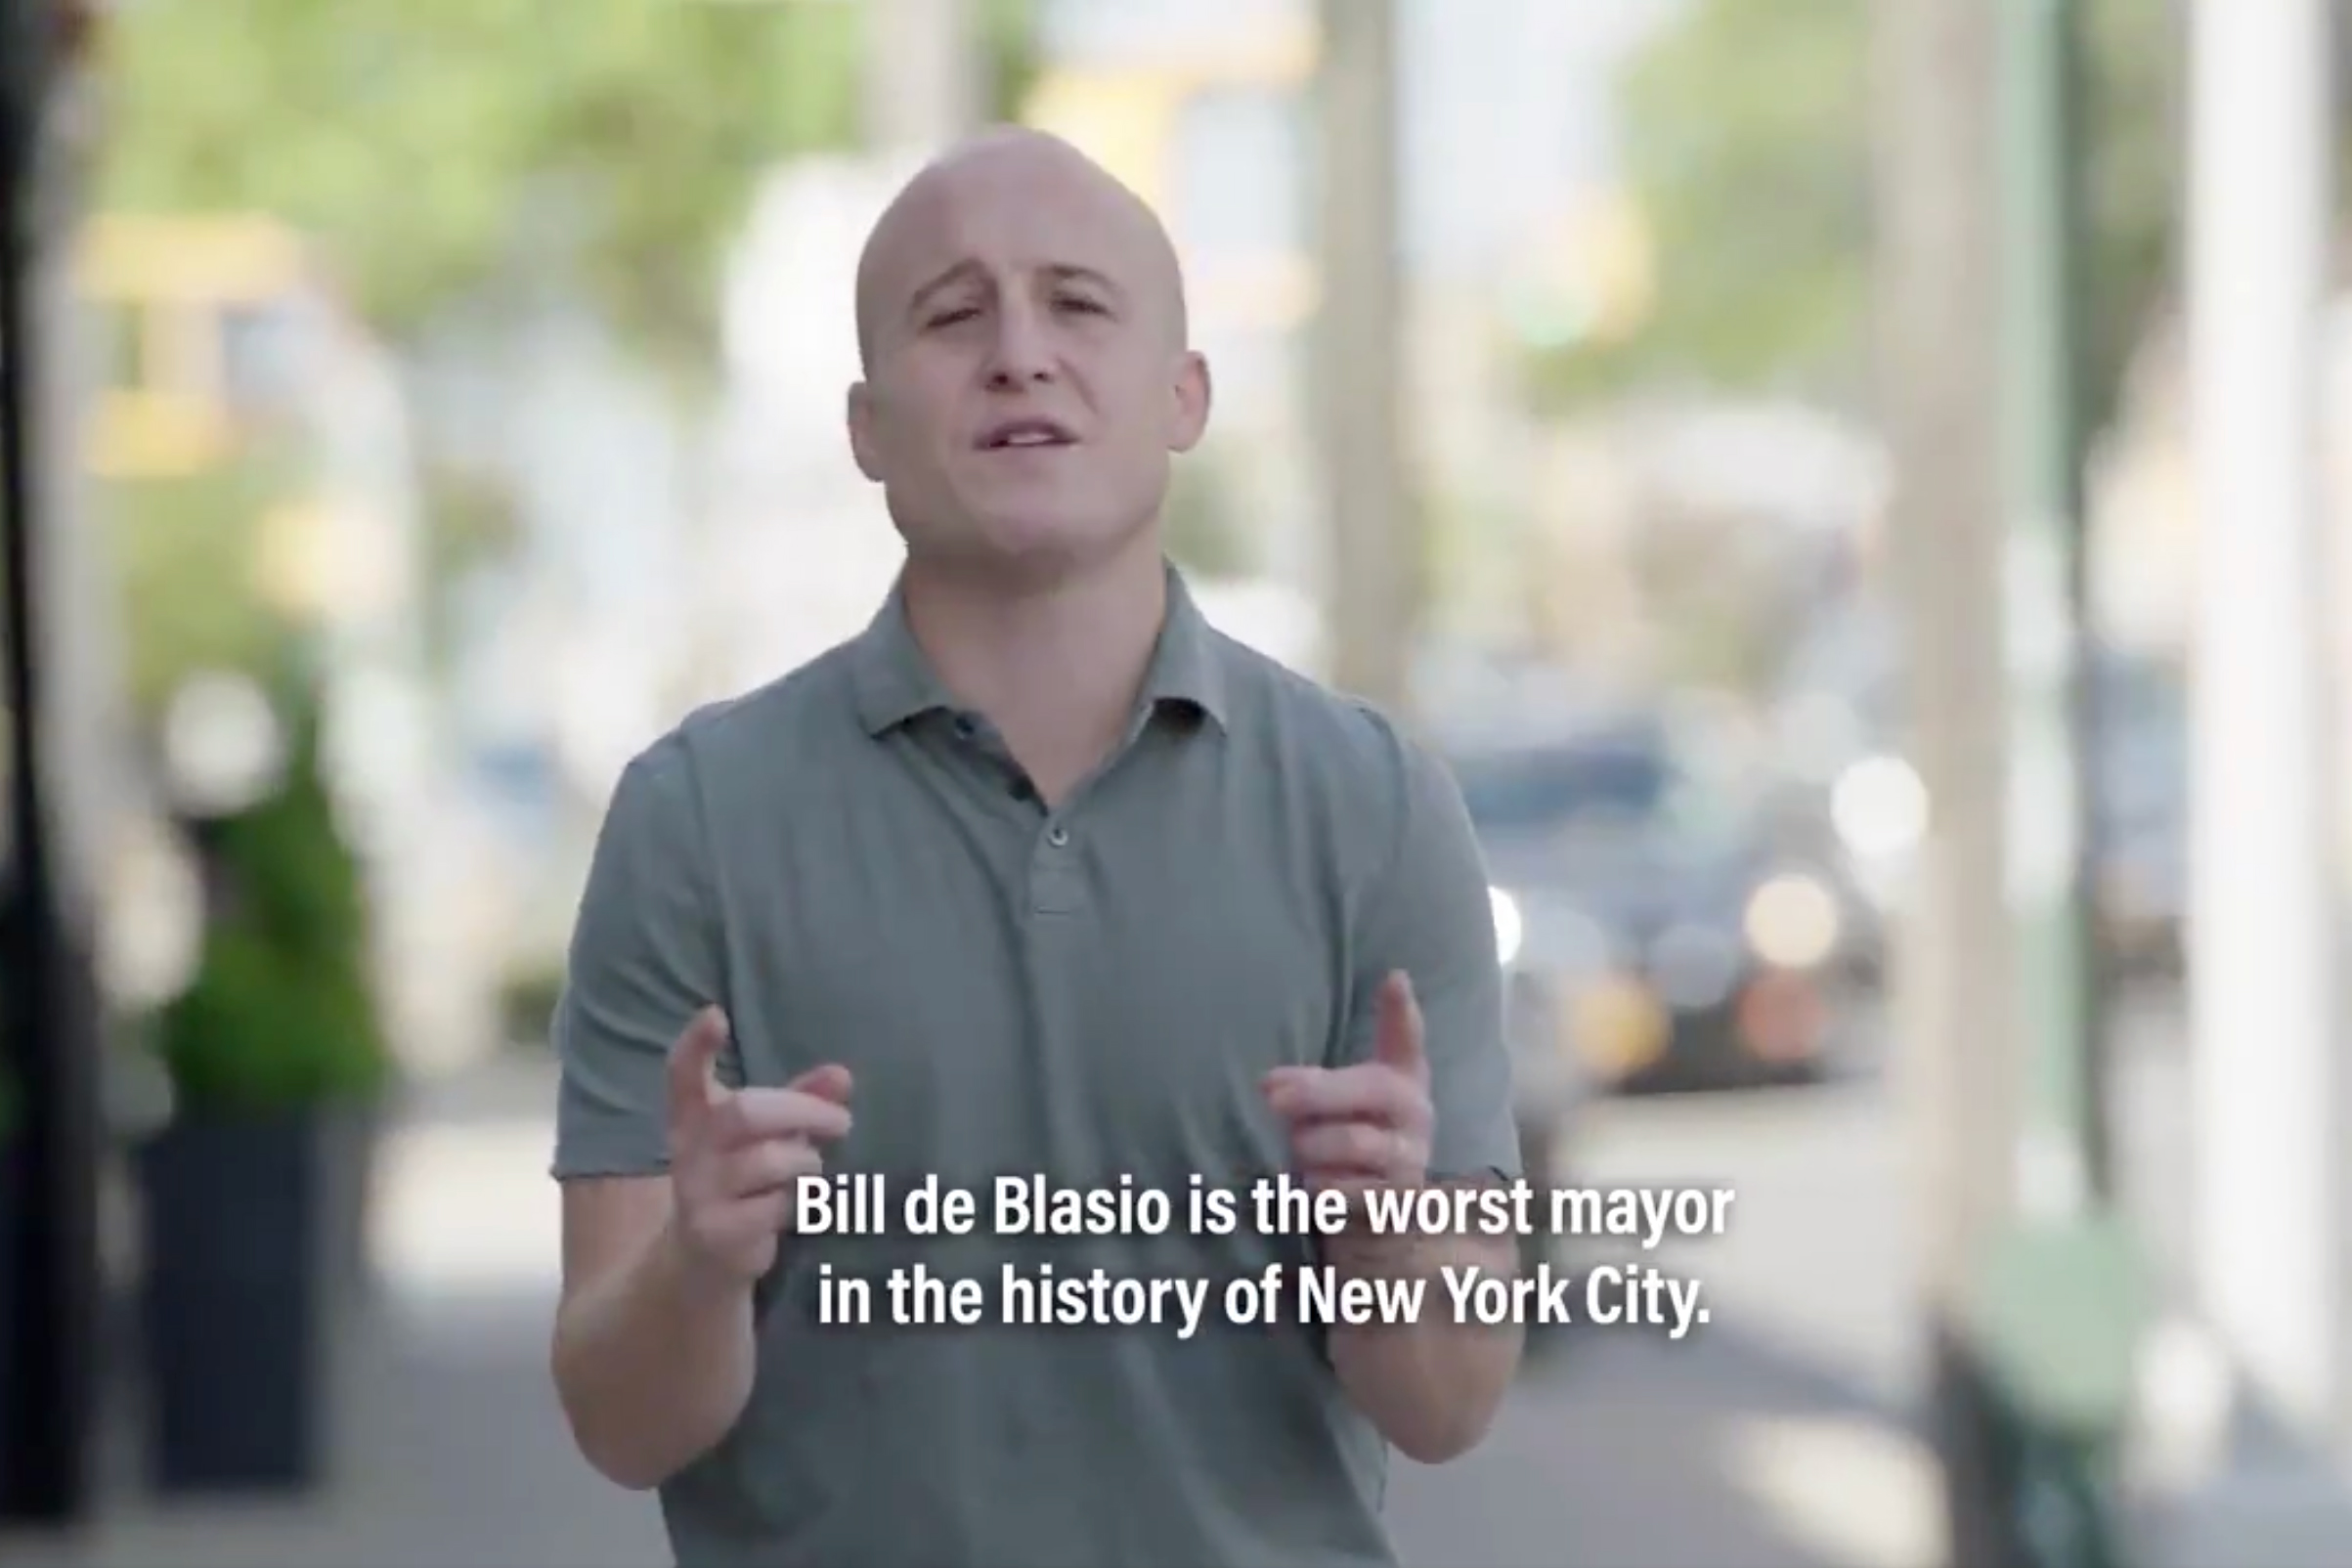 Congressional Rep. Max Rose (D-NY) released a reelection ad denouncing Mayor Bill de Blasio.